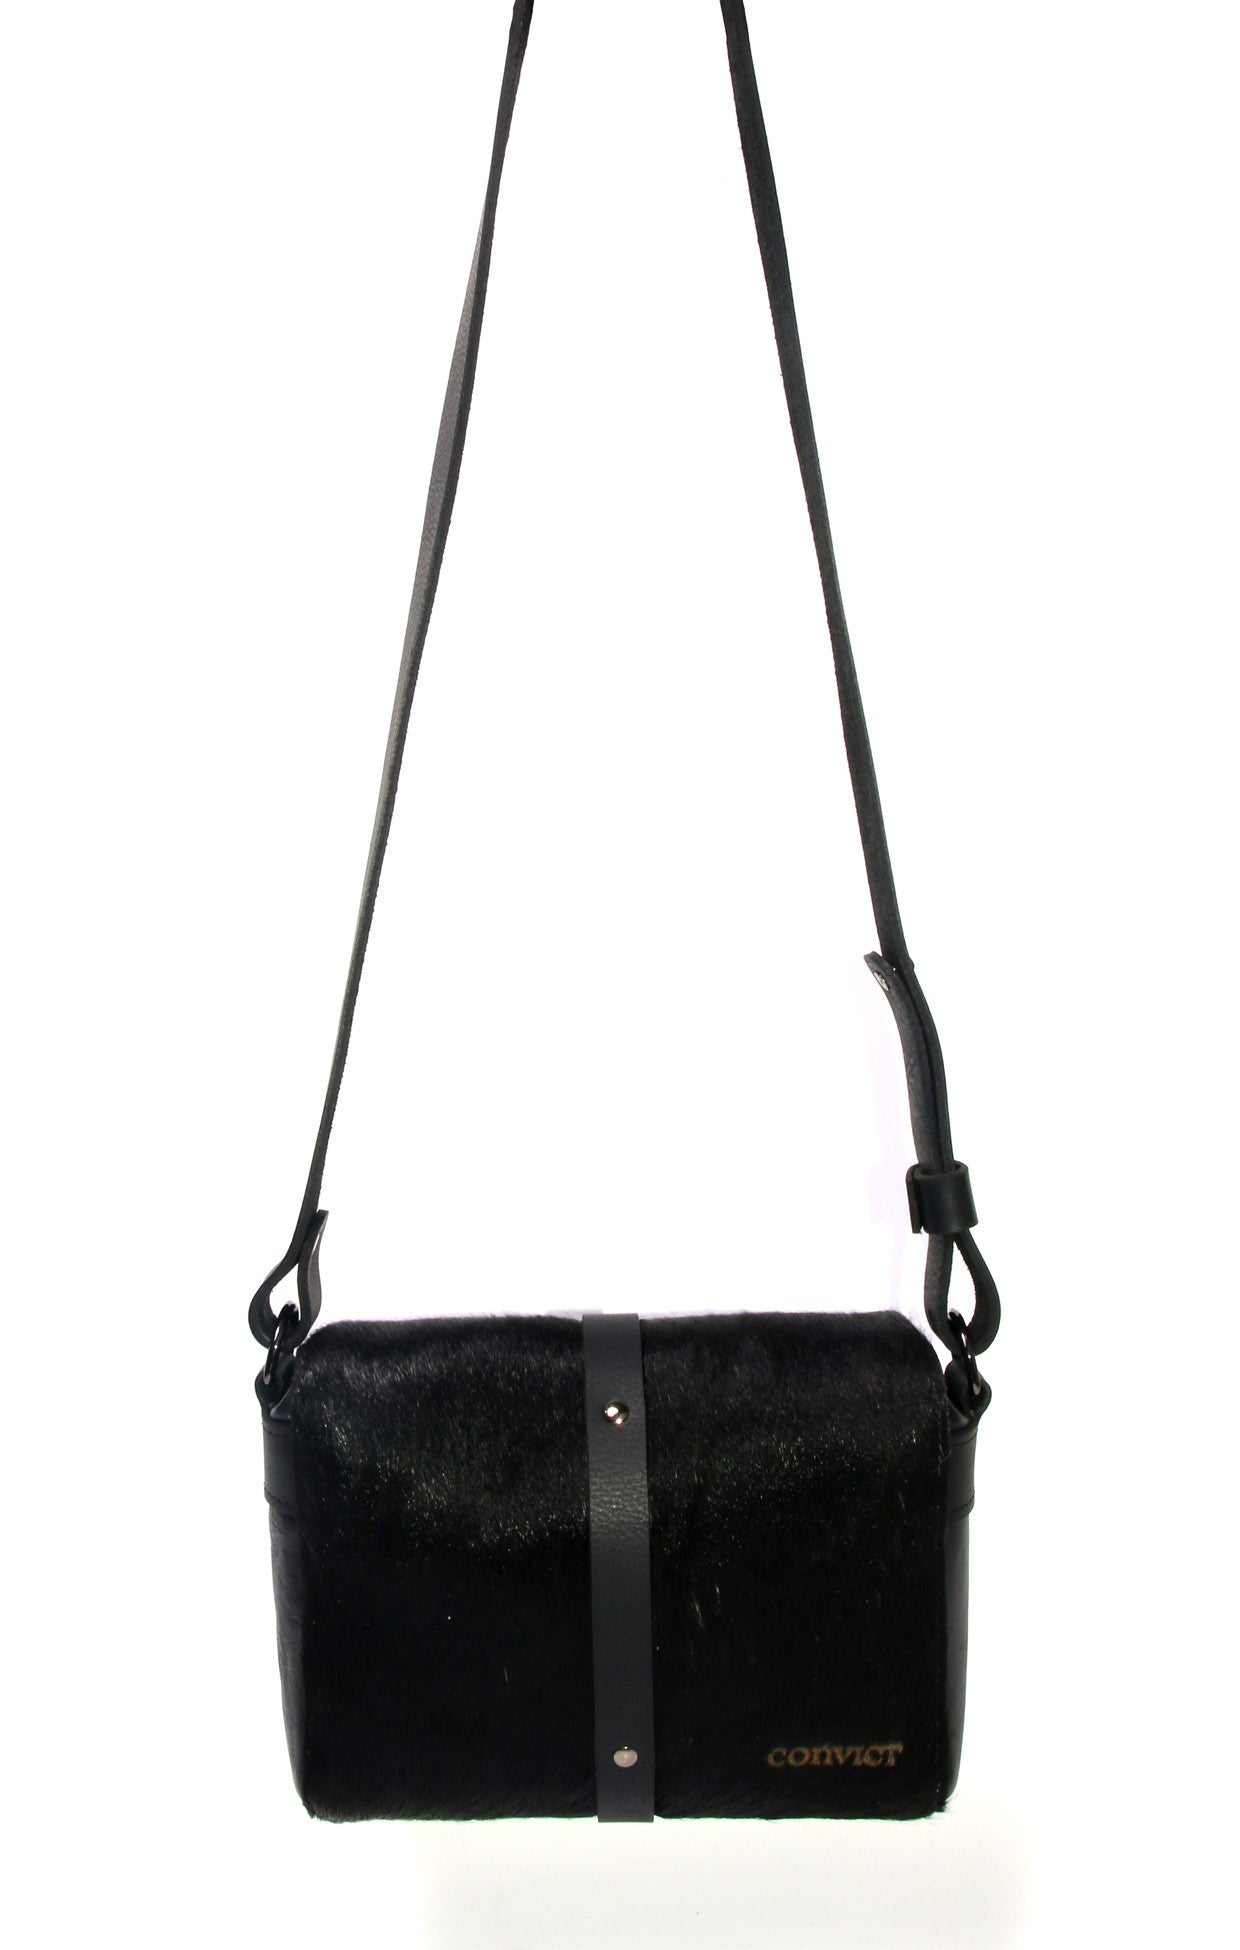 Sophia Box Satchel Back - Black cowhide